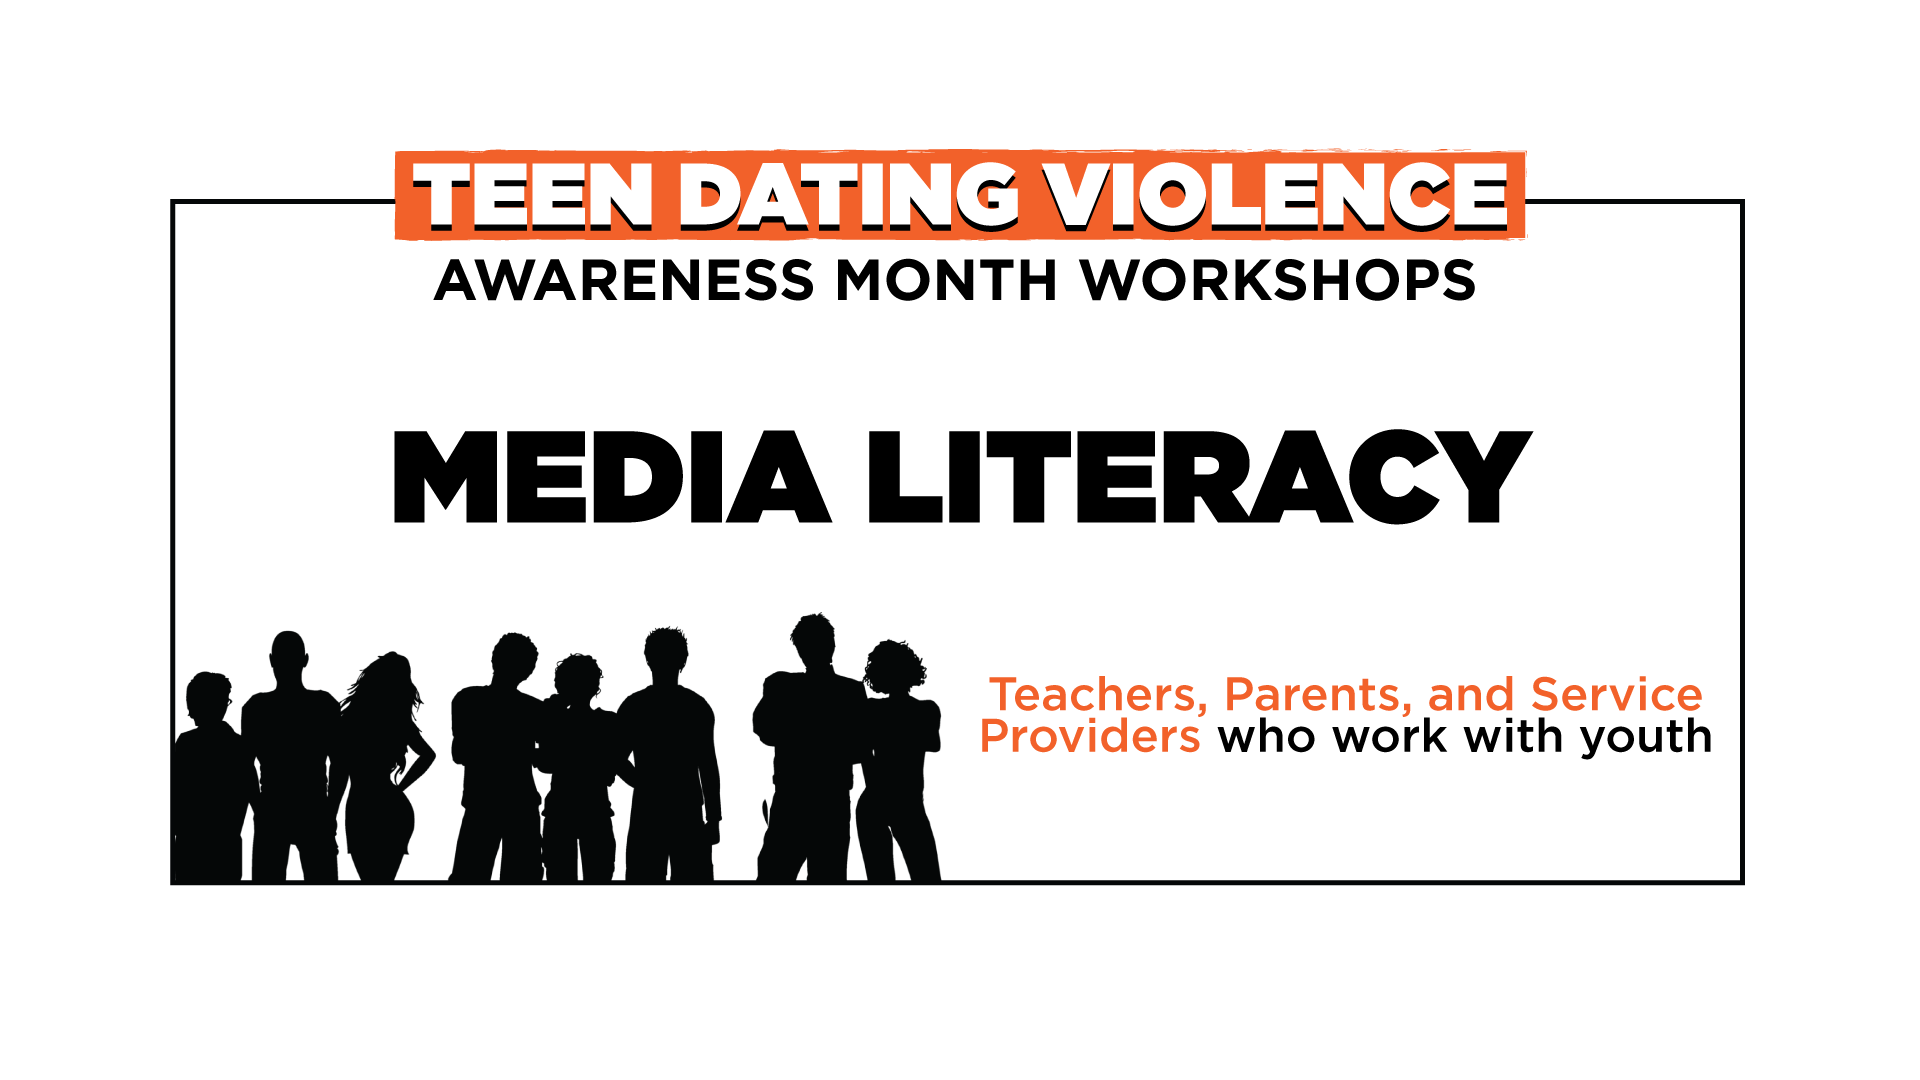 Media Literacy - Adults